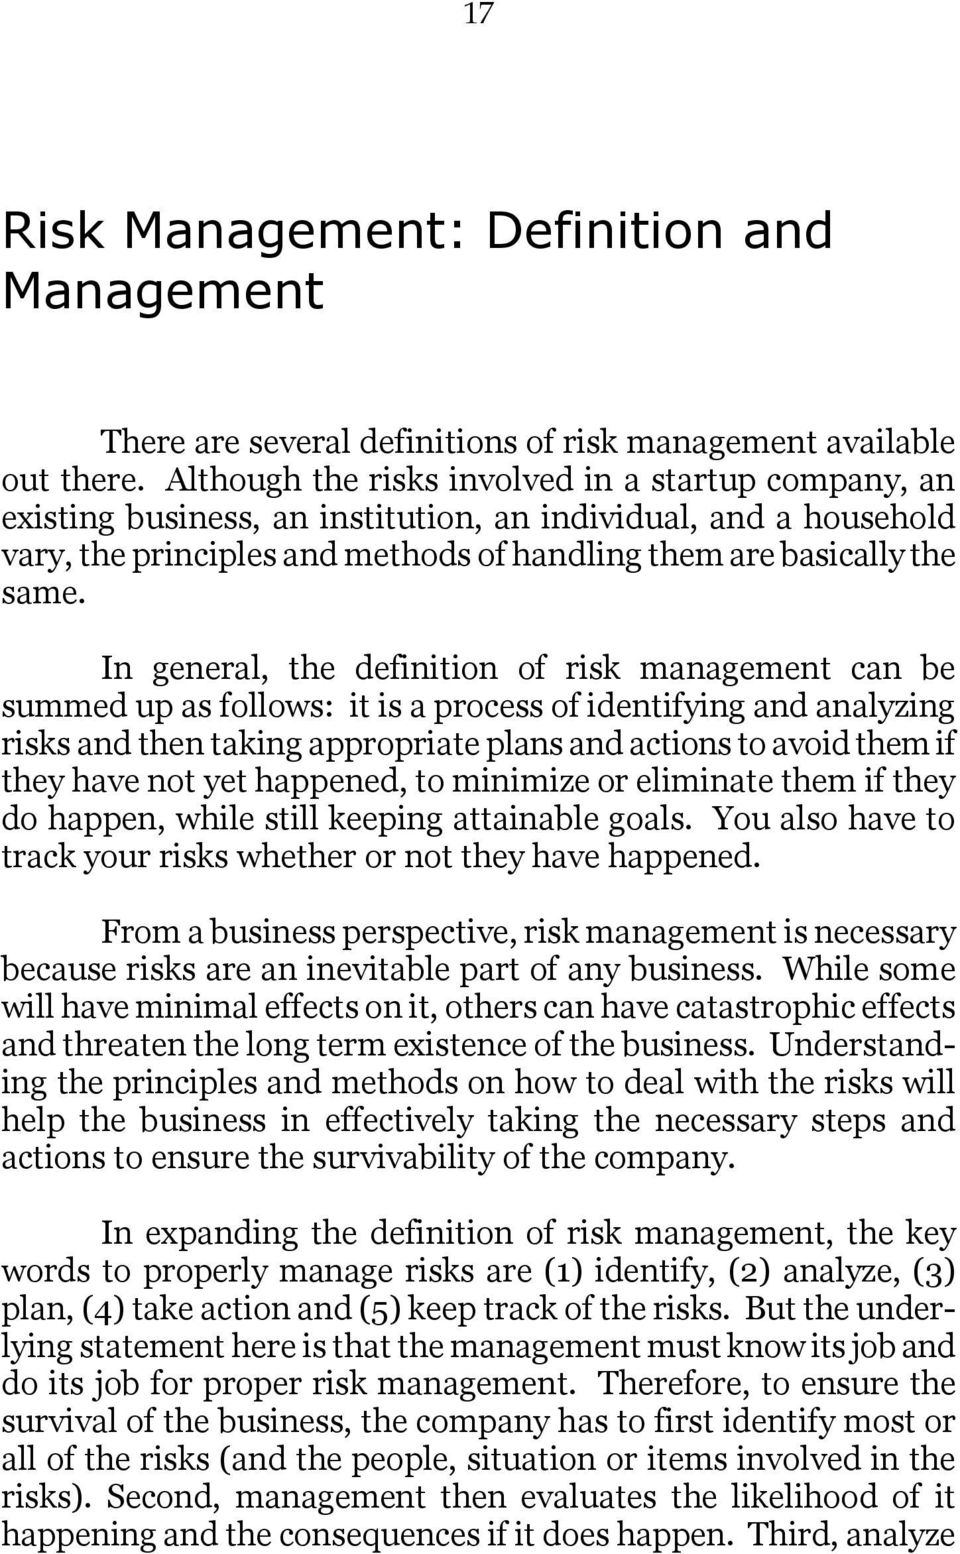 In general, the definition of risk management can be summed up as follows: it is a process of identifying and analyzing risks and then taking appropriate plans and actions to avoid them if they have